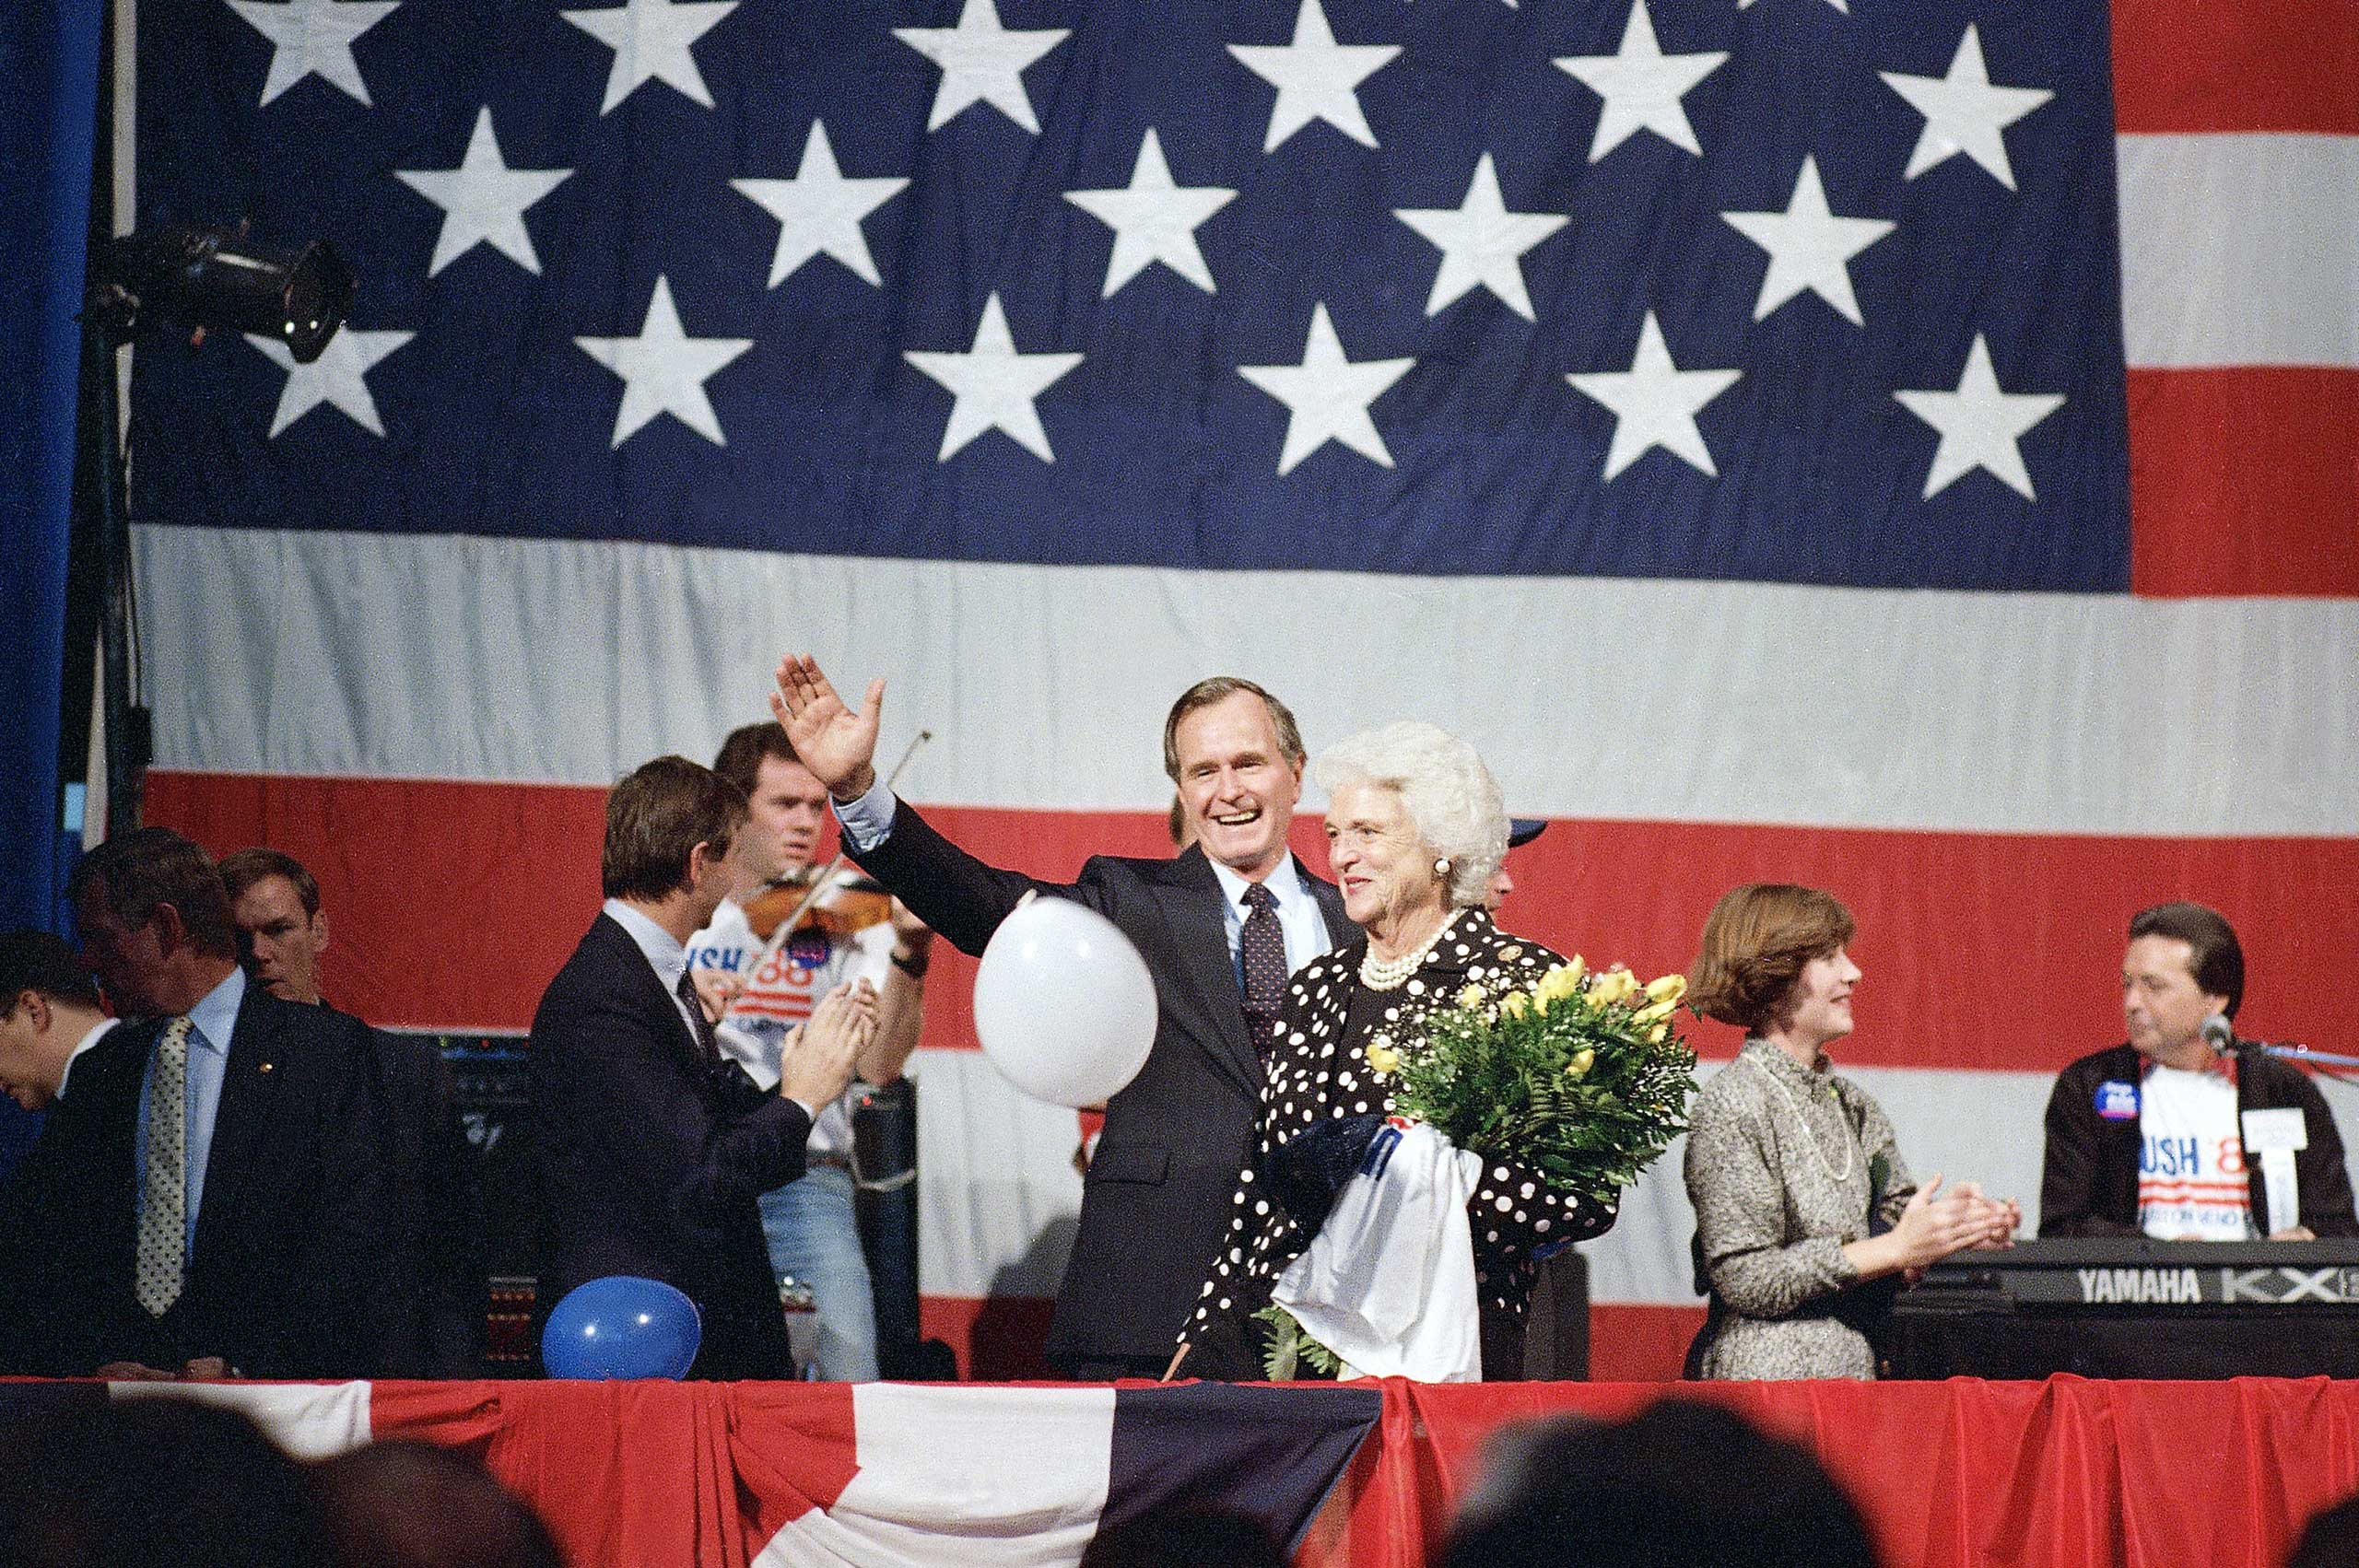 George H.W. Bush announced his first presidential campaign on Oct. 12, 1987, in Houston, Texas, with a speech about his work as vice president.